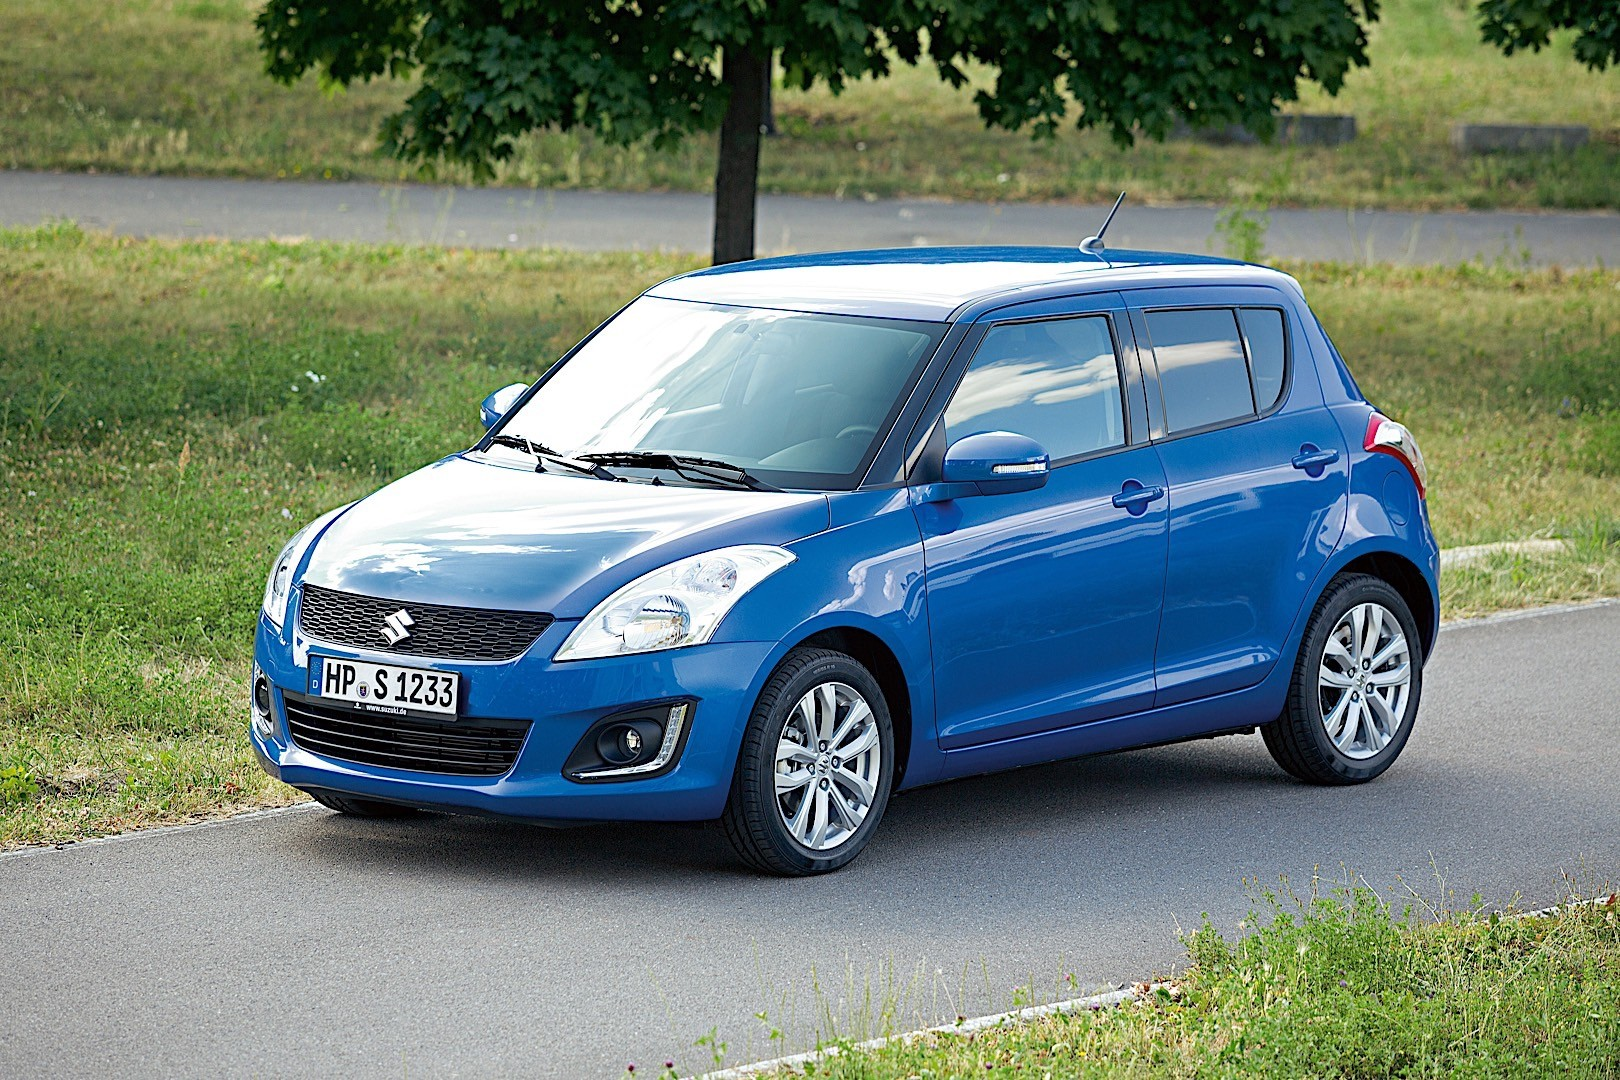 SUZUKI Swift 5 Doors specs & photos - 2014, 2015, 2016, 2017